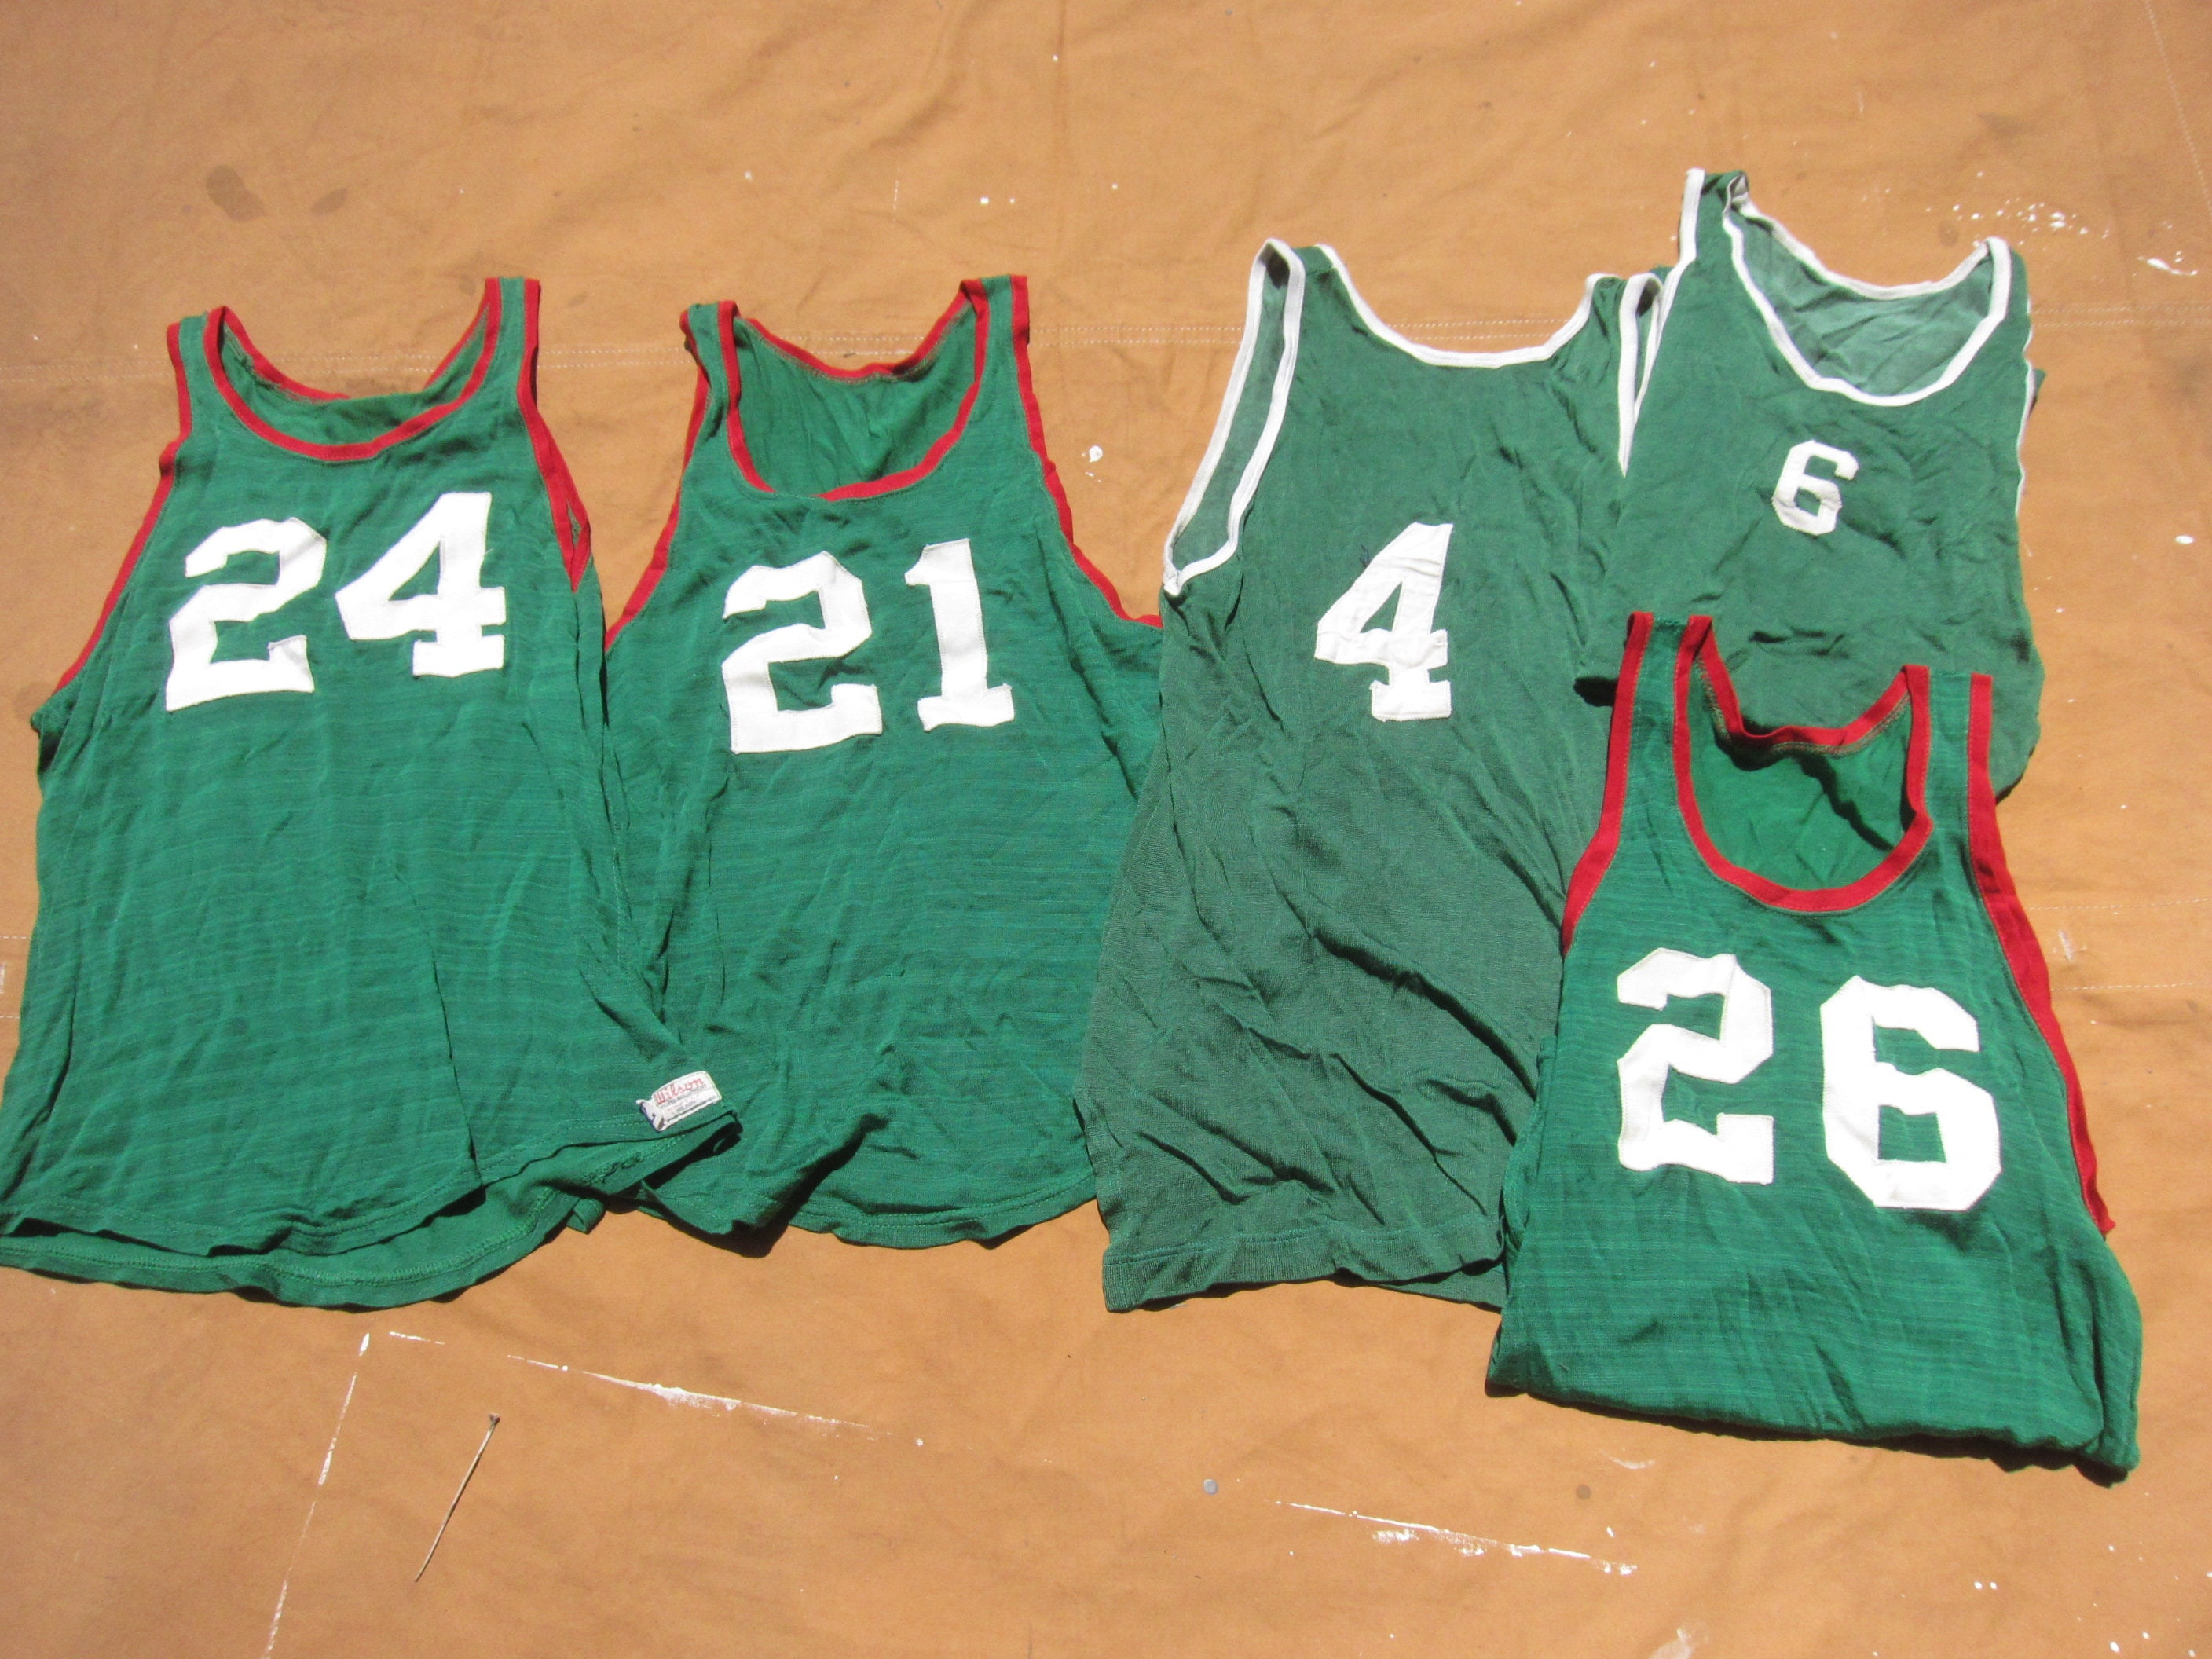 1950s Mens Hats | 50s Vintage Men's Hats xsSmall 60S Nylon Basketball Jersey Green, Red, Durene, Patch Numbers, 1960S Wilson, 1950S 50S, Sleeveless, Tank Top Tee T-Shirt $35.00 AT vintagedancer.com